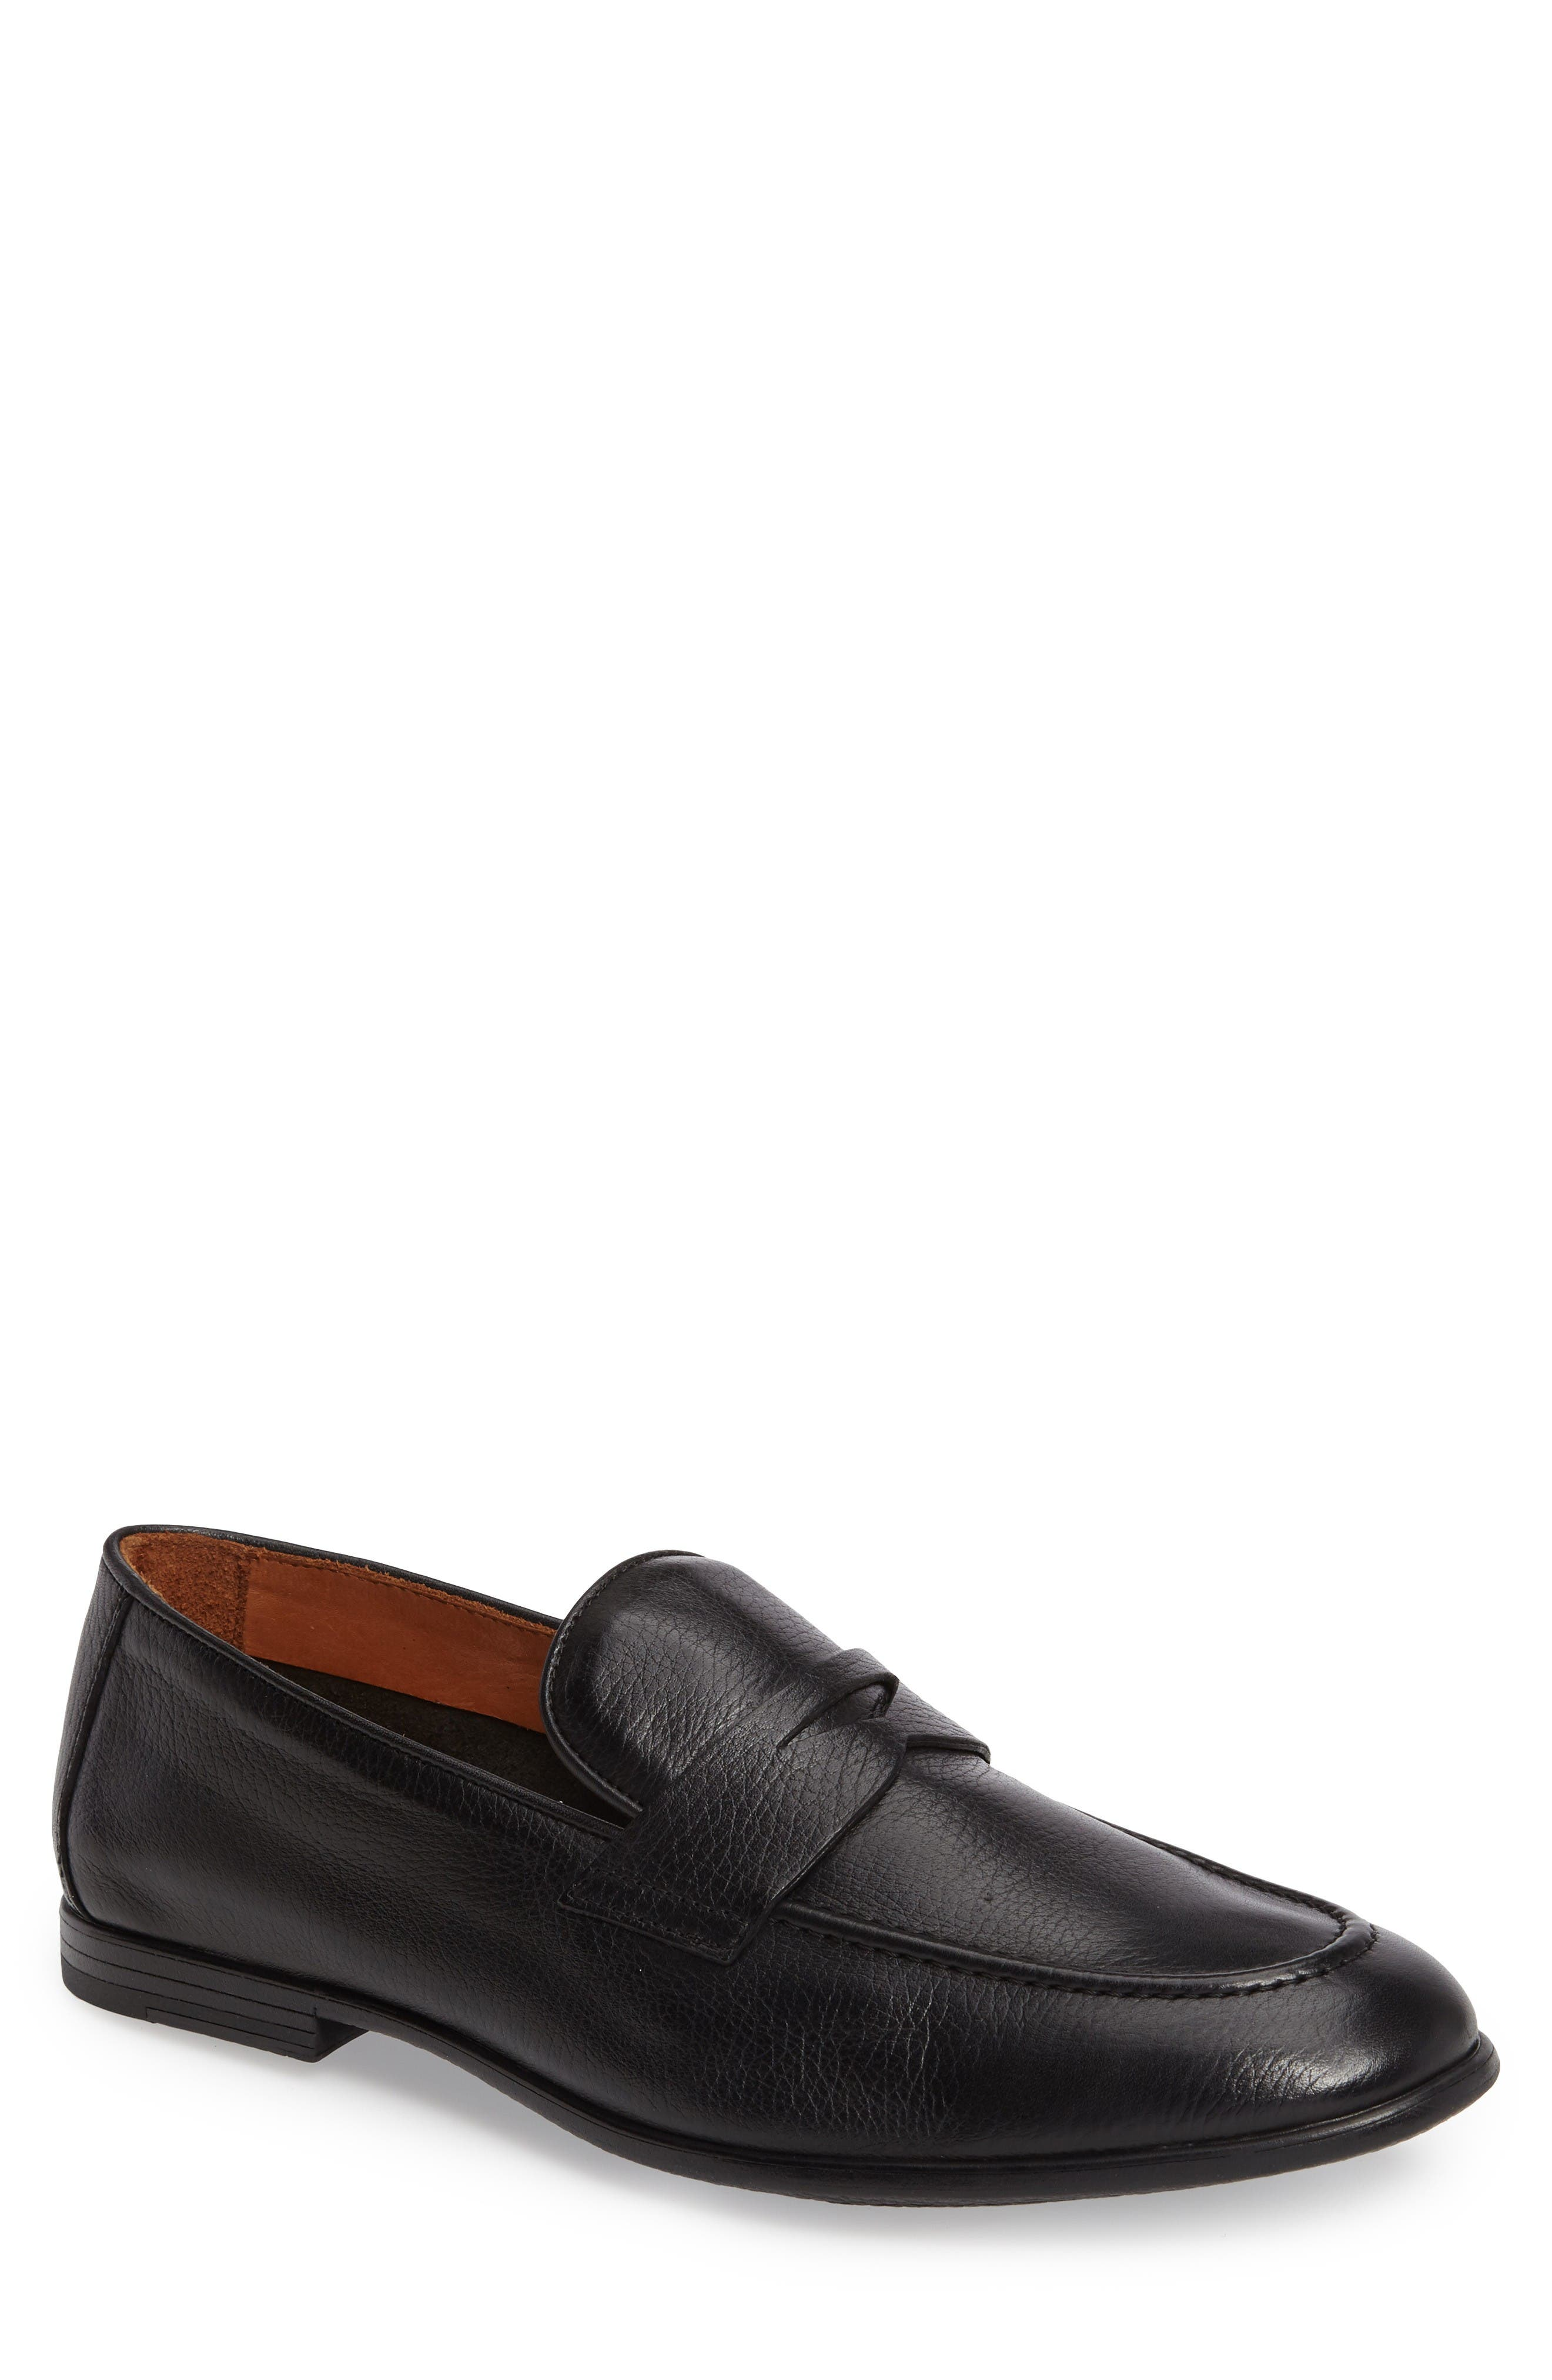 Alternate Image 1 Selected - Vince Camuto Dillon Penny Loafer (Men)